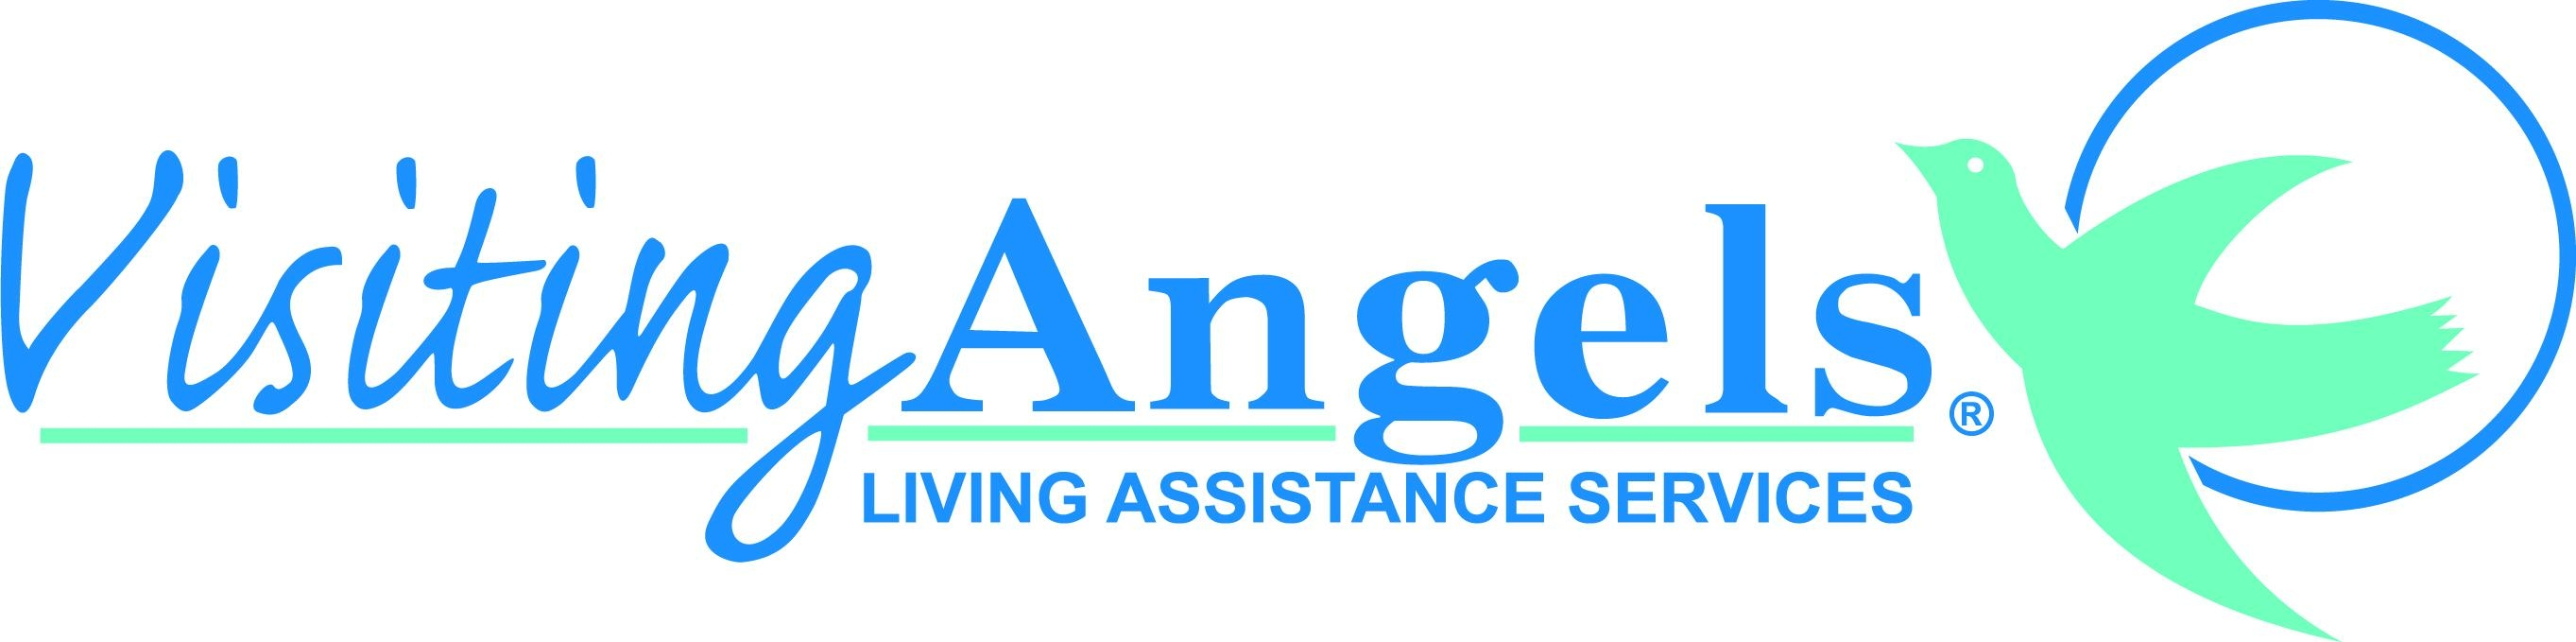 Visiting Angels - Reno, NV - Home Health Care Services